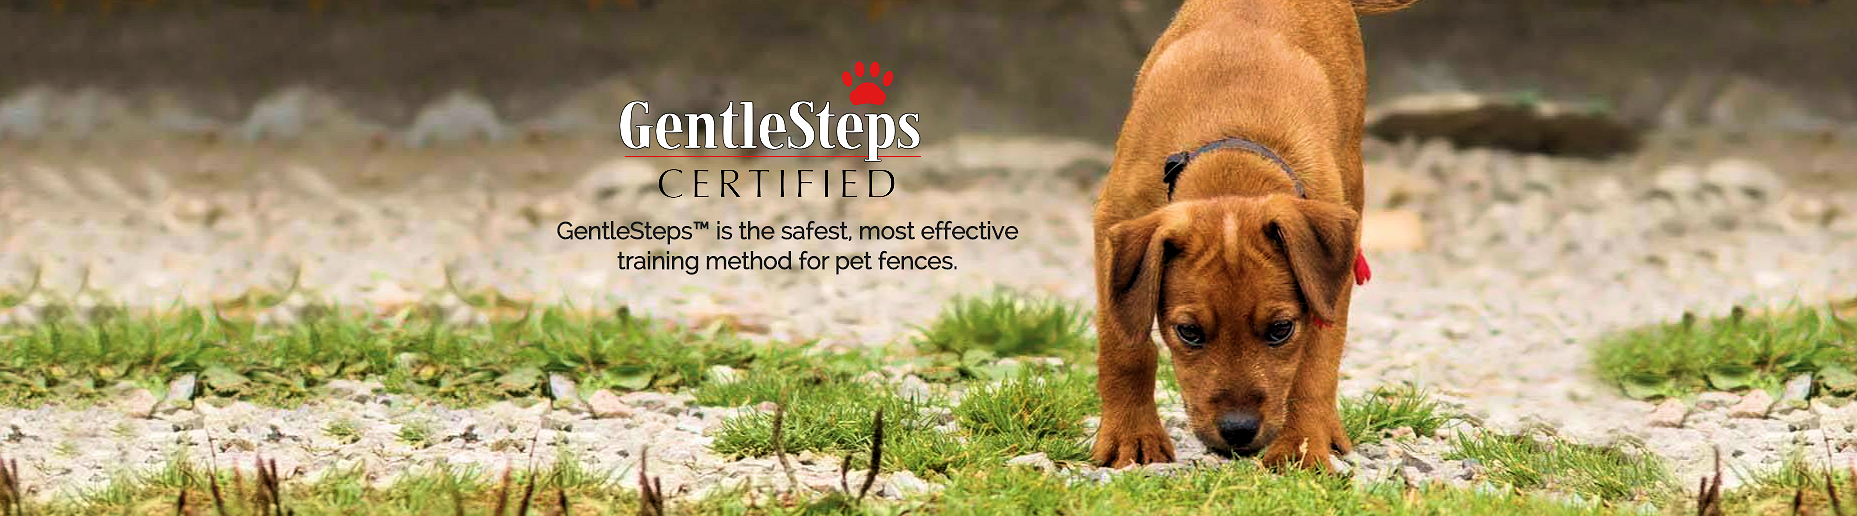 Dog sniffing grass with GentleSteps information